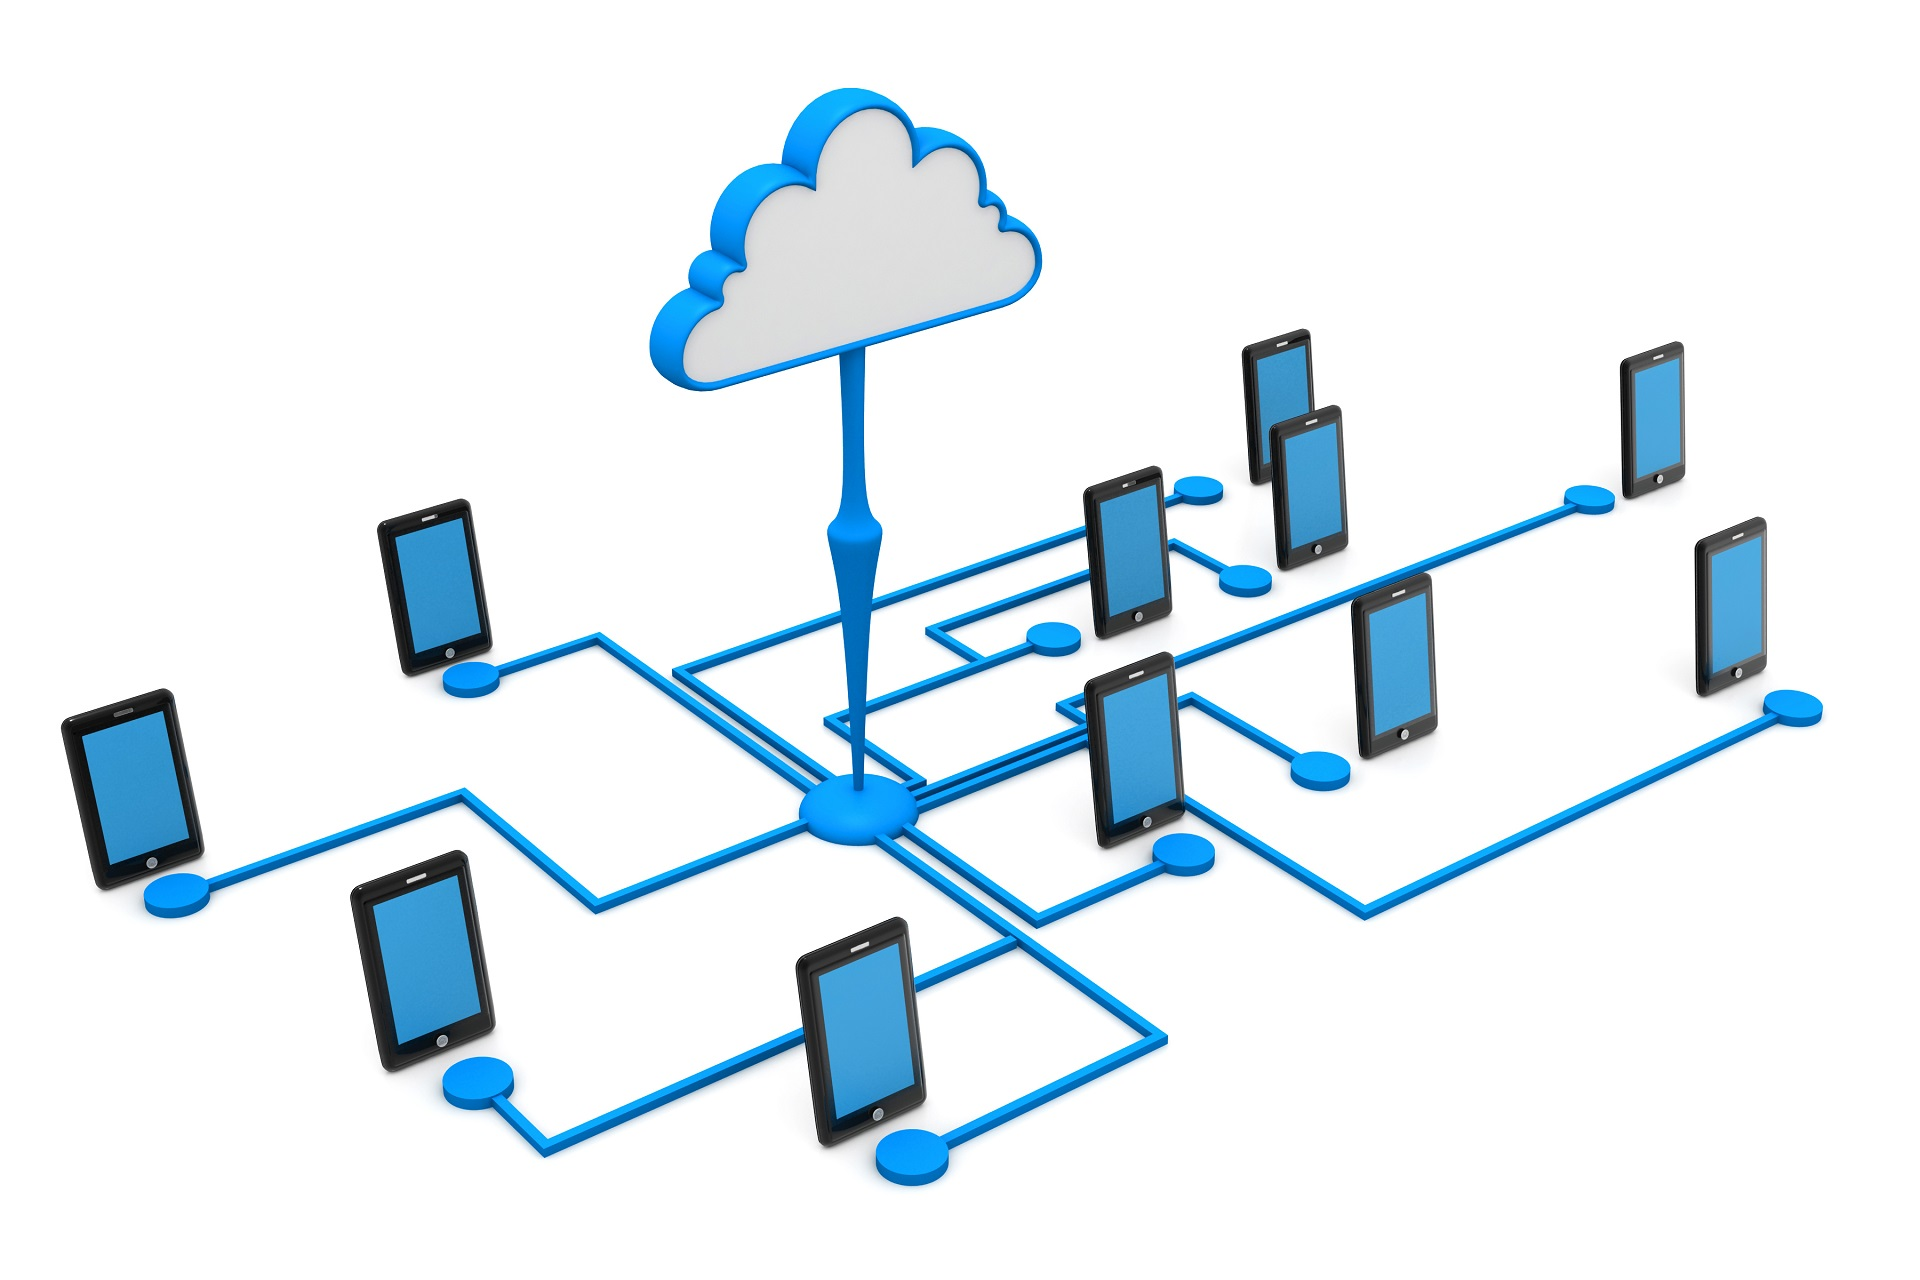 Cloud connecting to many mobile devices